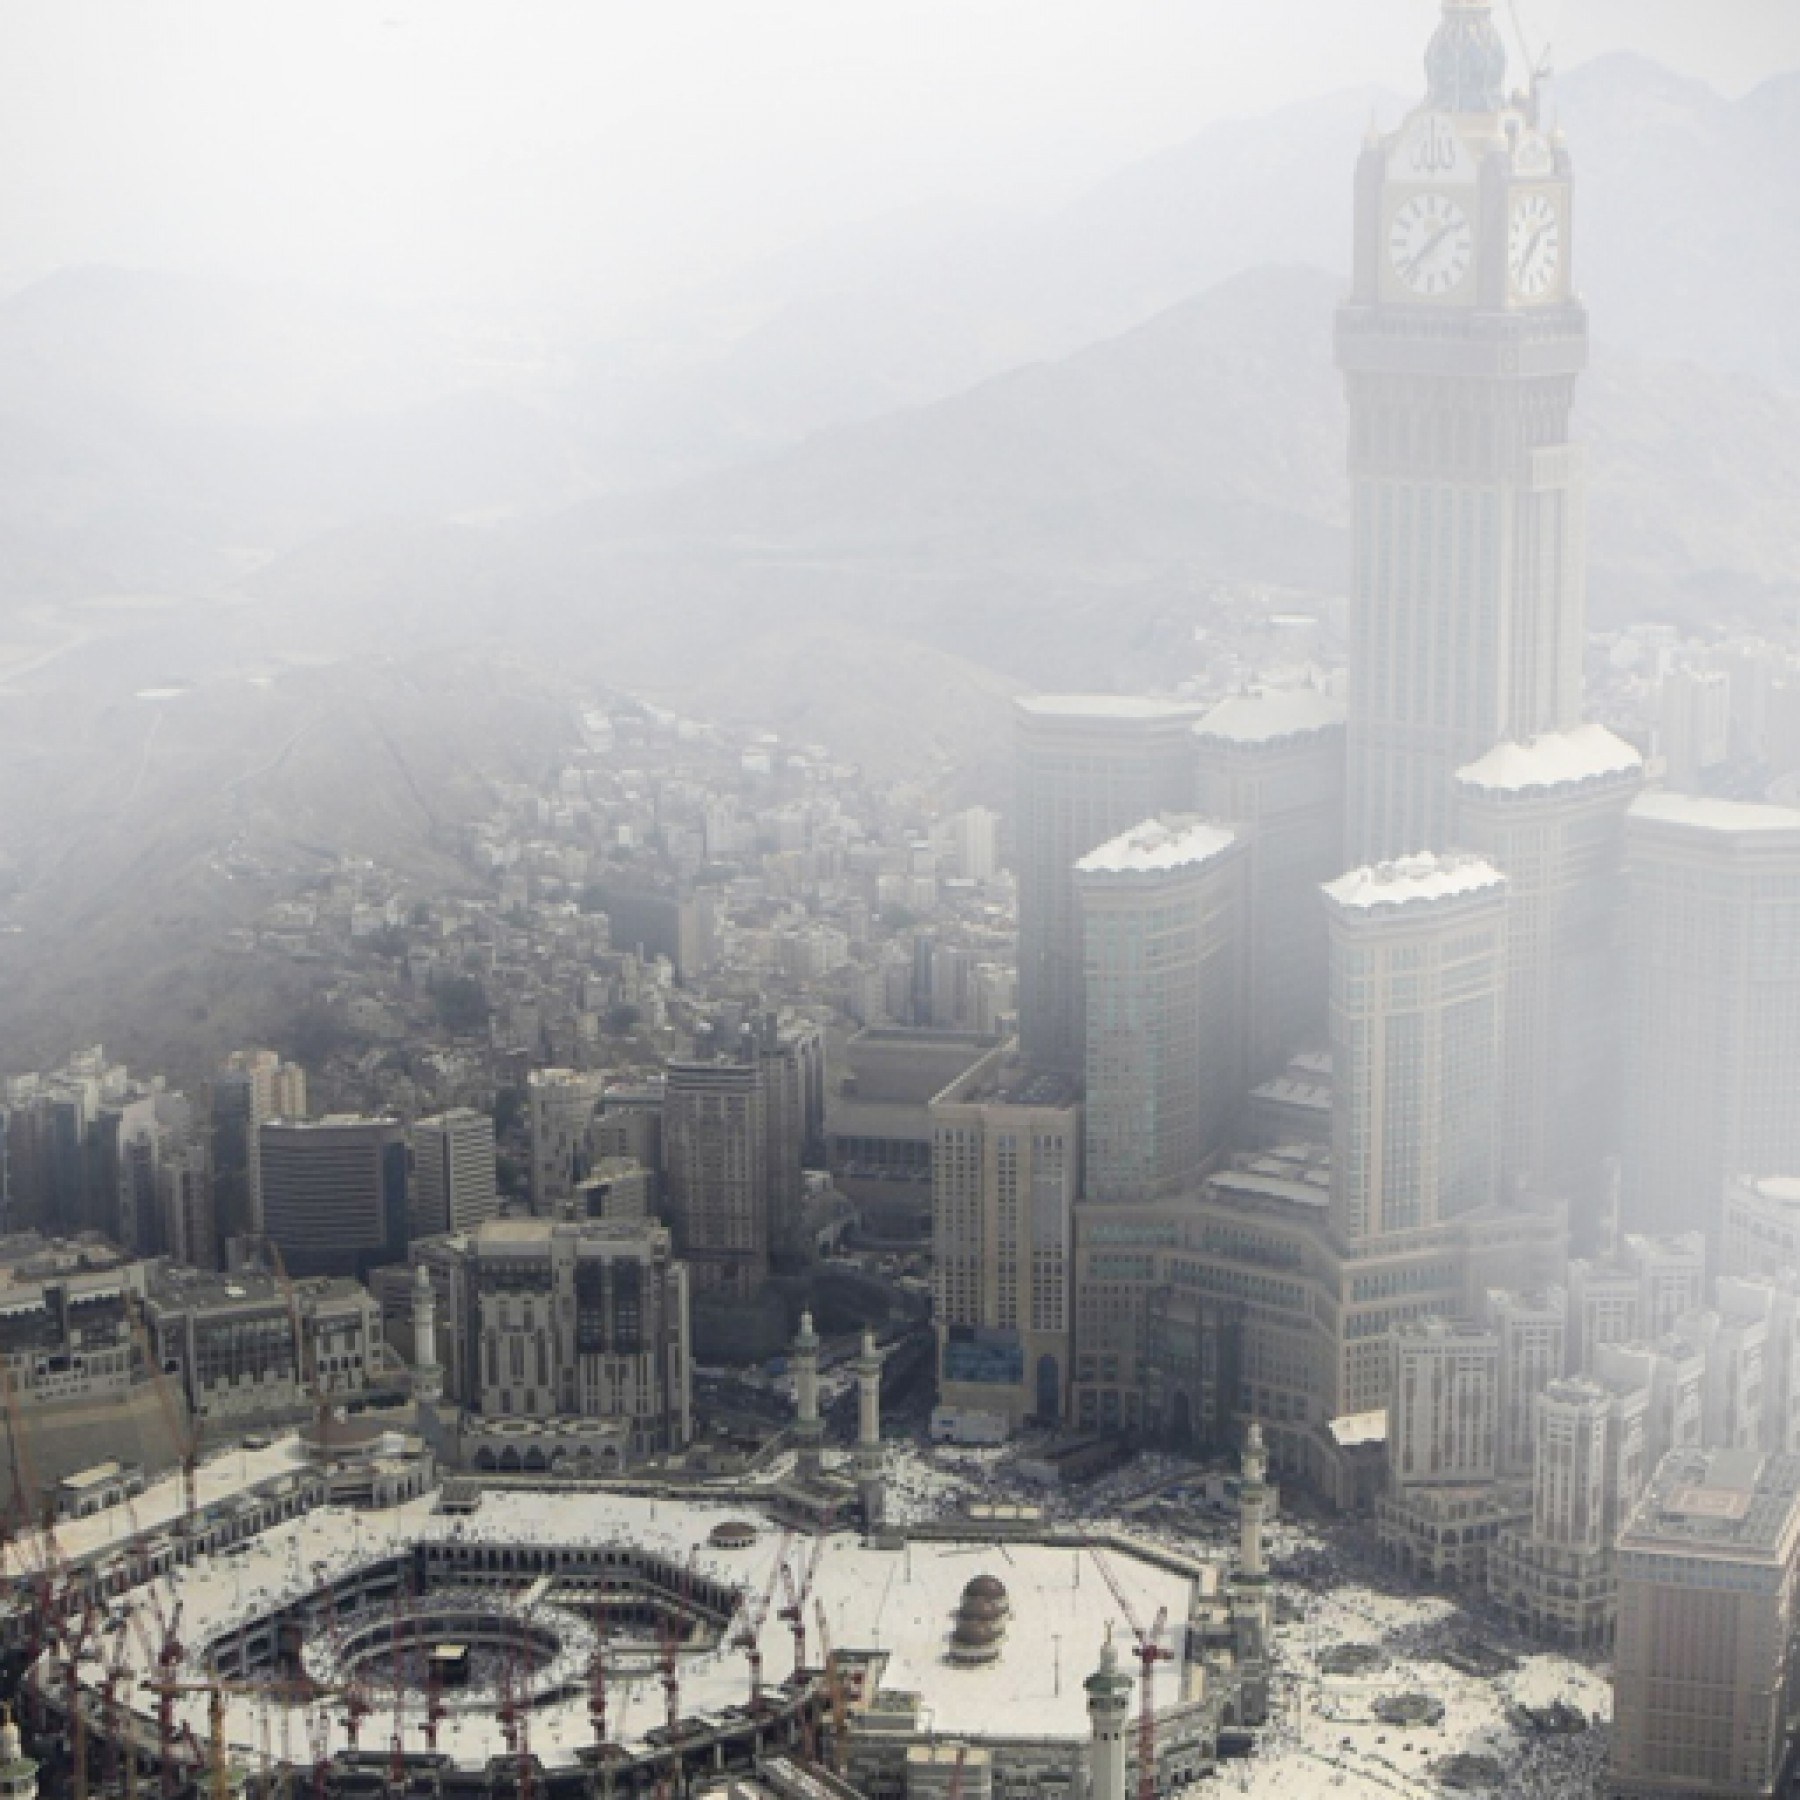 mecca-education-history-travel-adults-main-location1